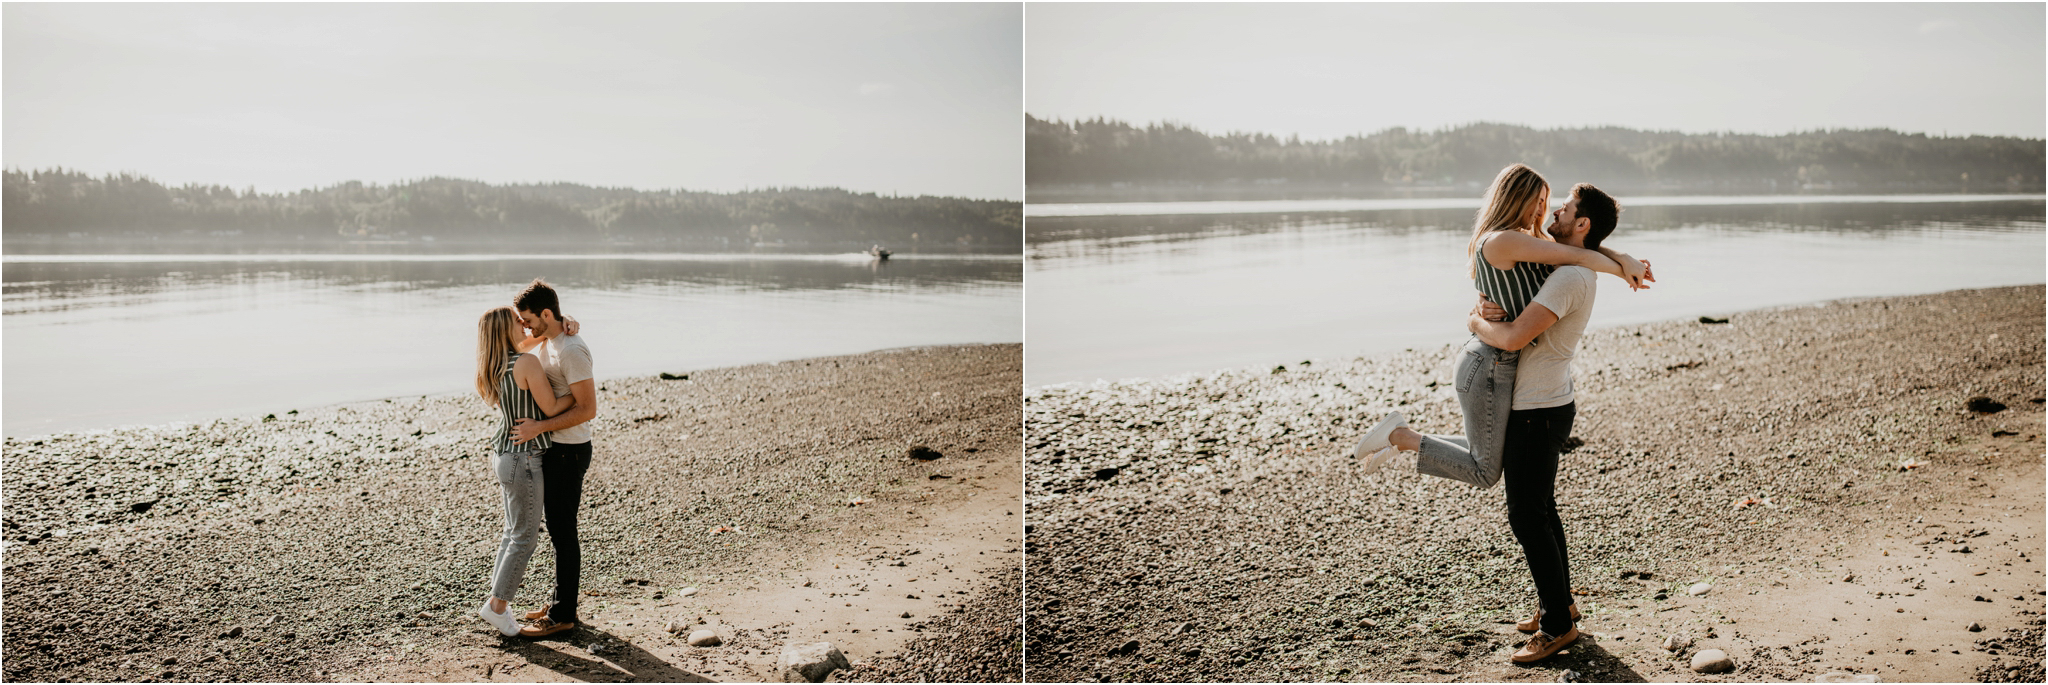 rile-and-ryan-fauntleroy-ferry-vashon-island-seattle-engagement-session-017.jpg